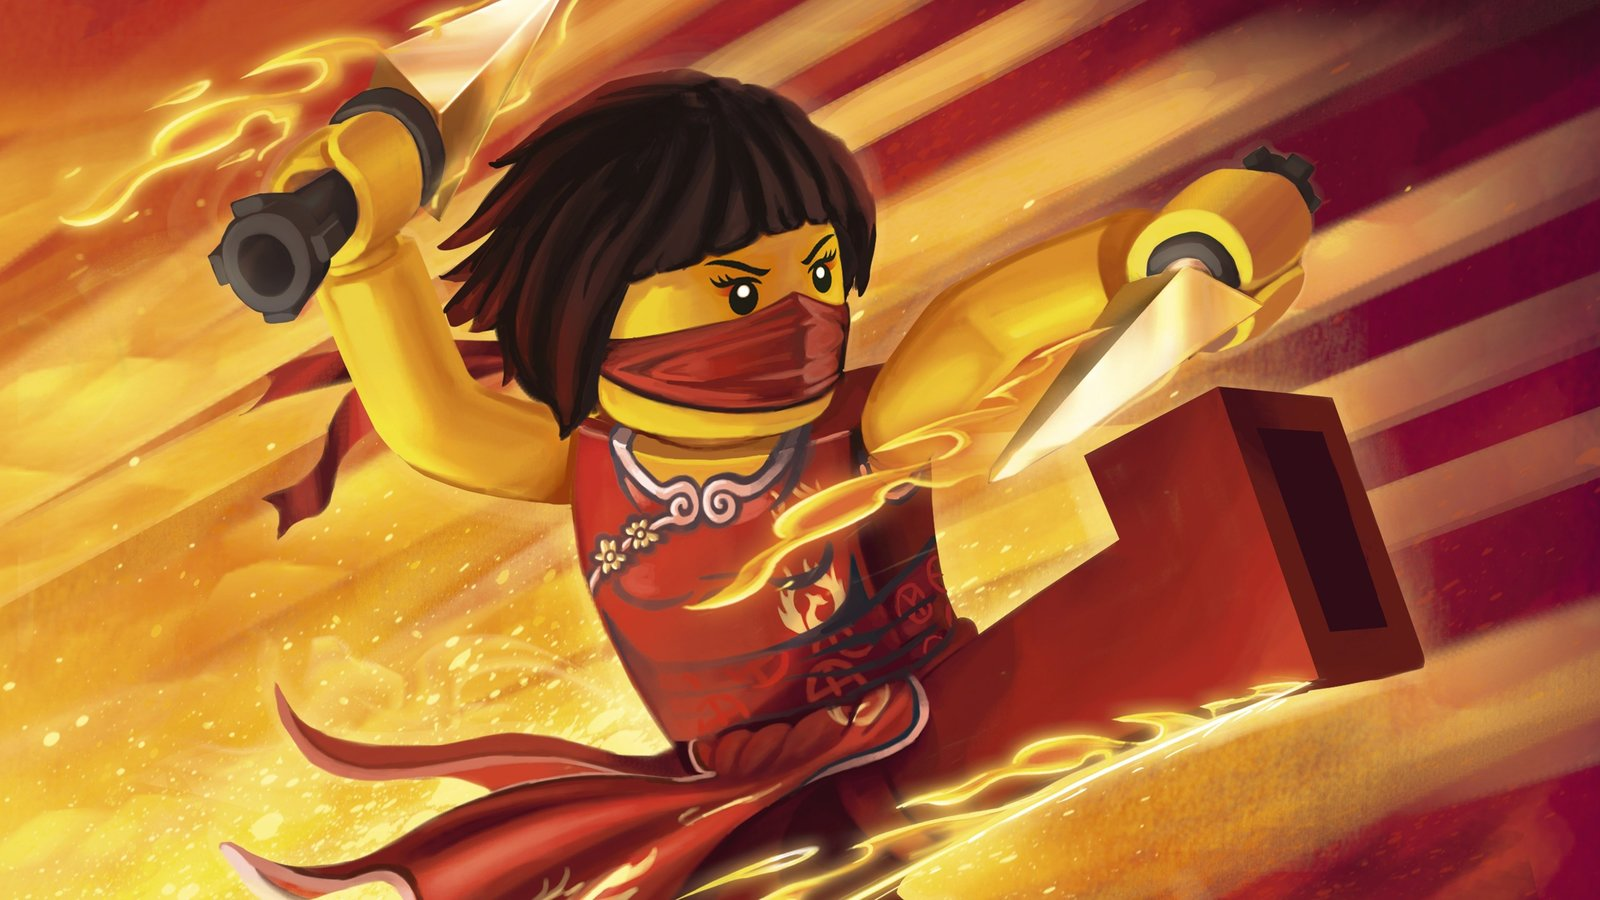 Ninjago: Masters of Spinjitzu: The Tournament of Elements